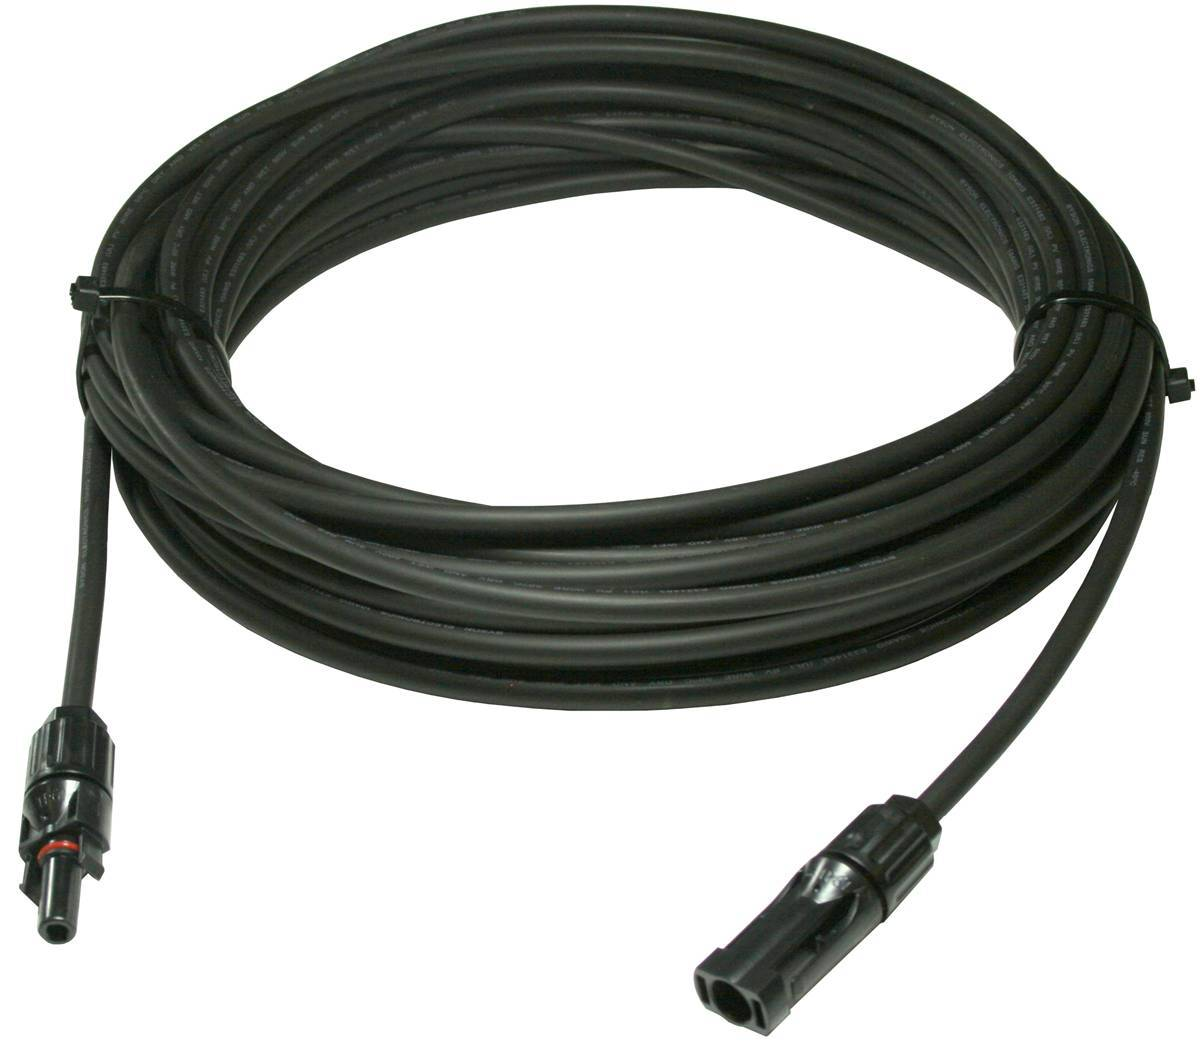 10AWG 25' 600VDC PV Wire w/ +/- MC4 Connectors